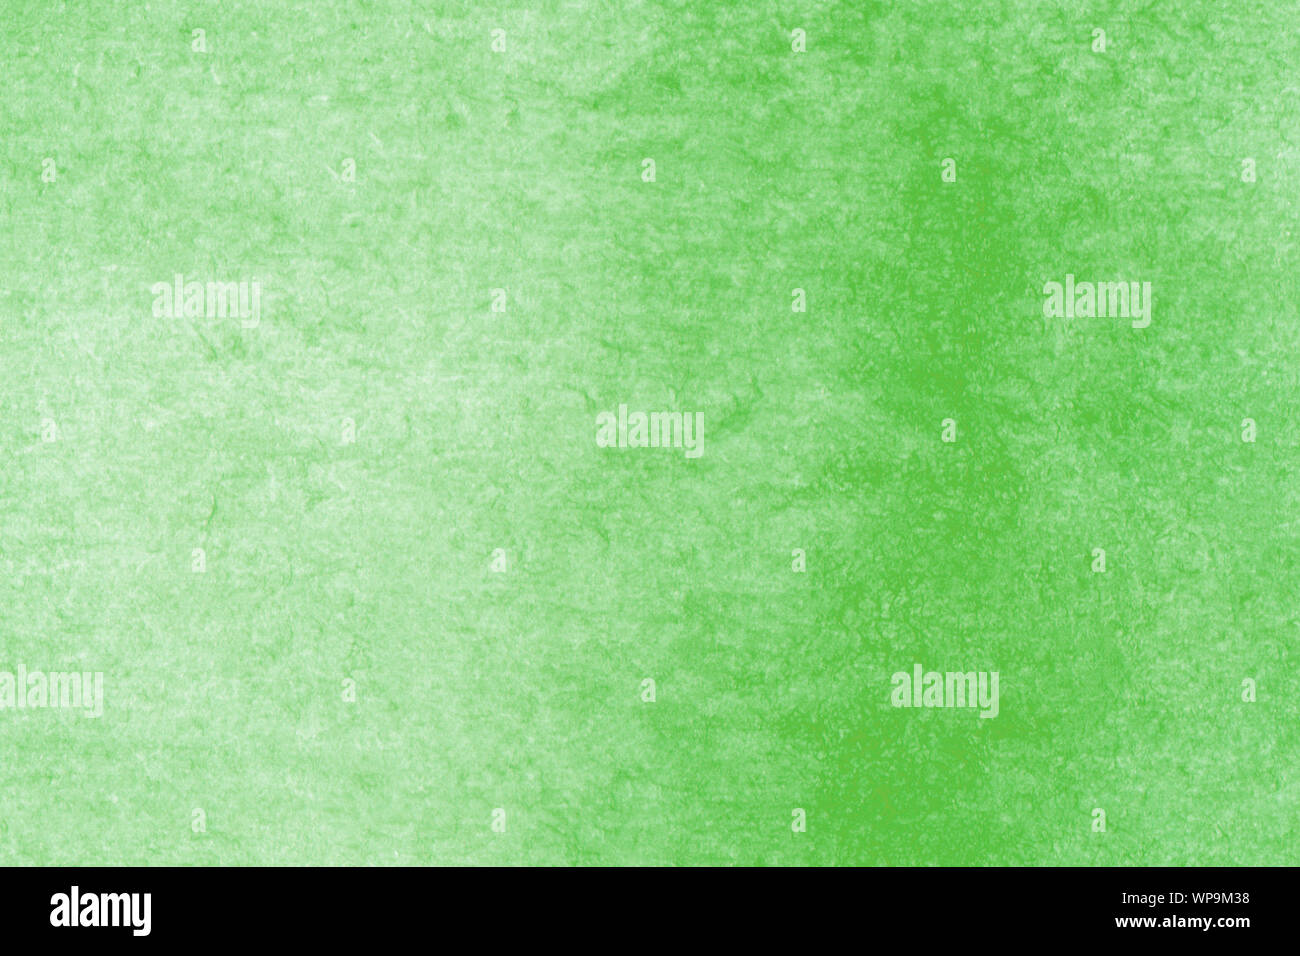 Green Watercolor Texture For Wallpaper High Resolution